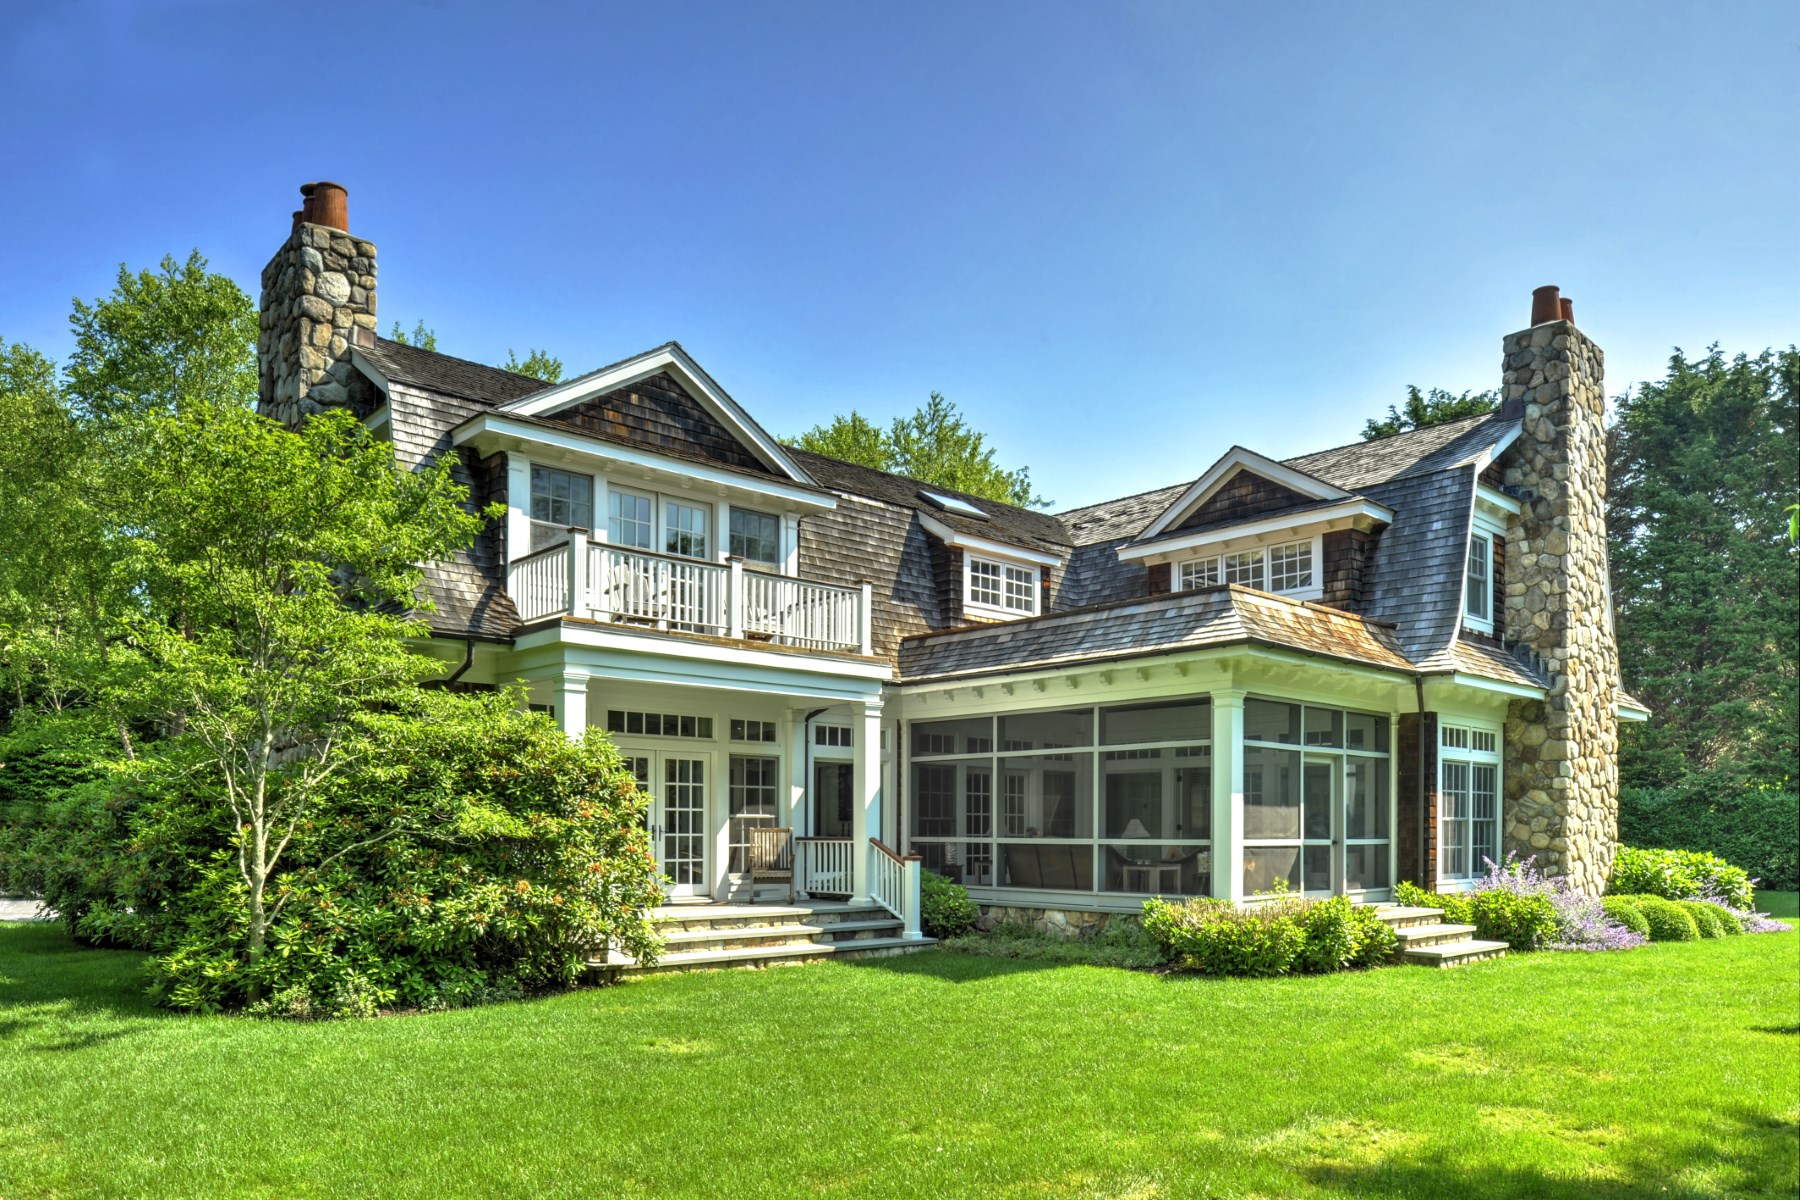 Single Family Home for Sale at Gorgeous Georgica Estate Home 11 Jericho Lane, East Hampton Village, East Hampton, New York, 11937 United States